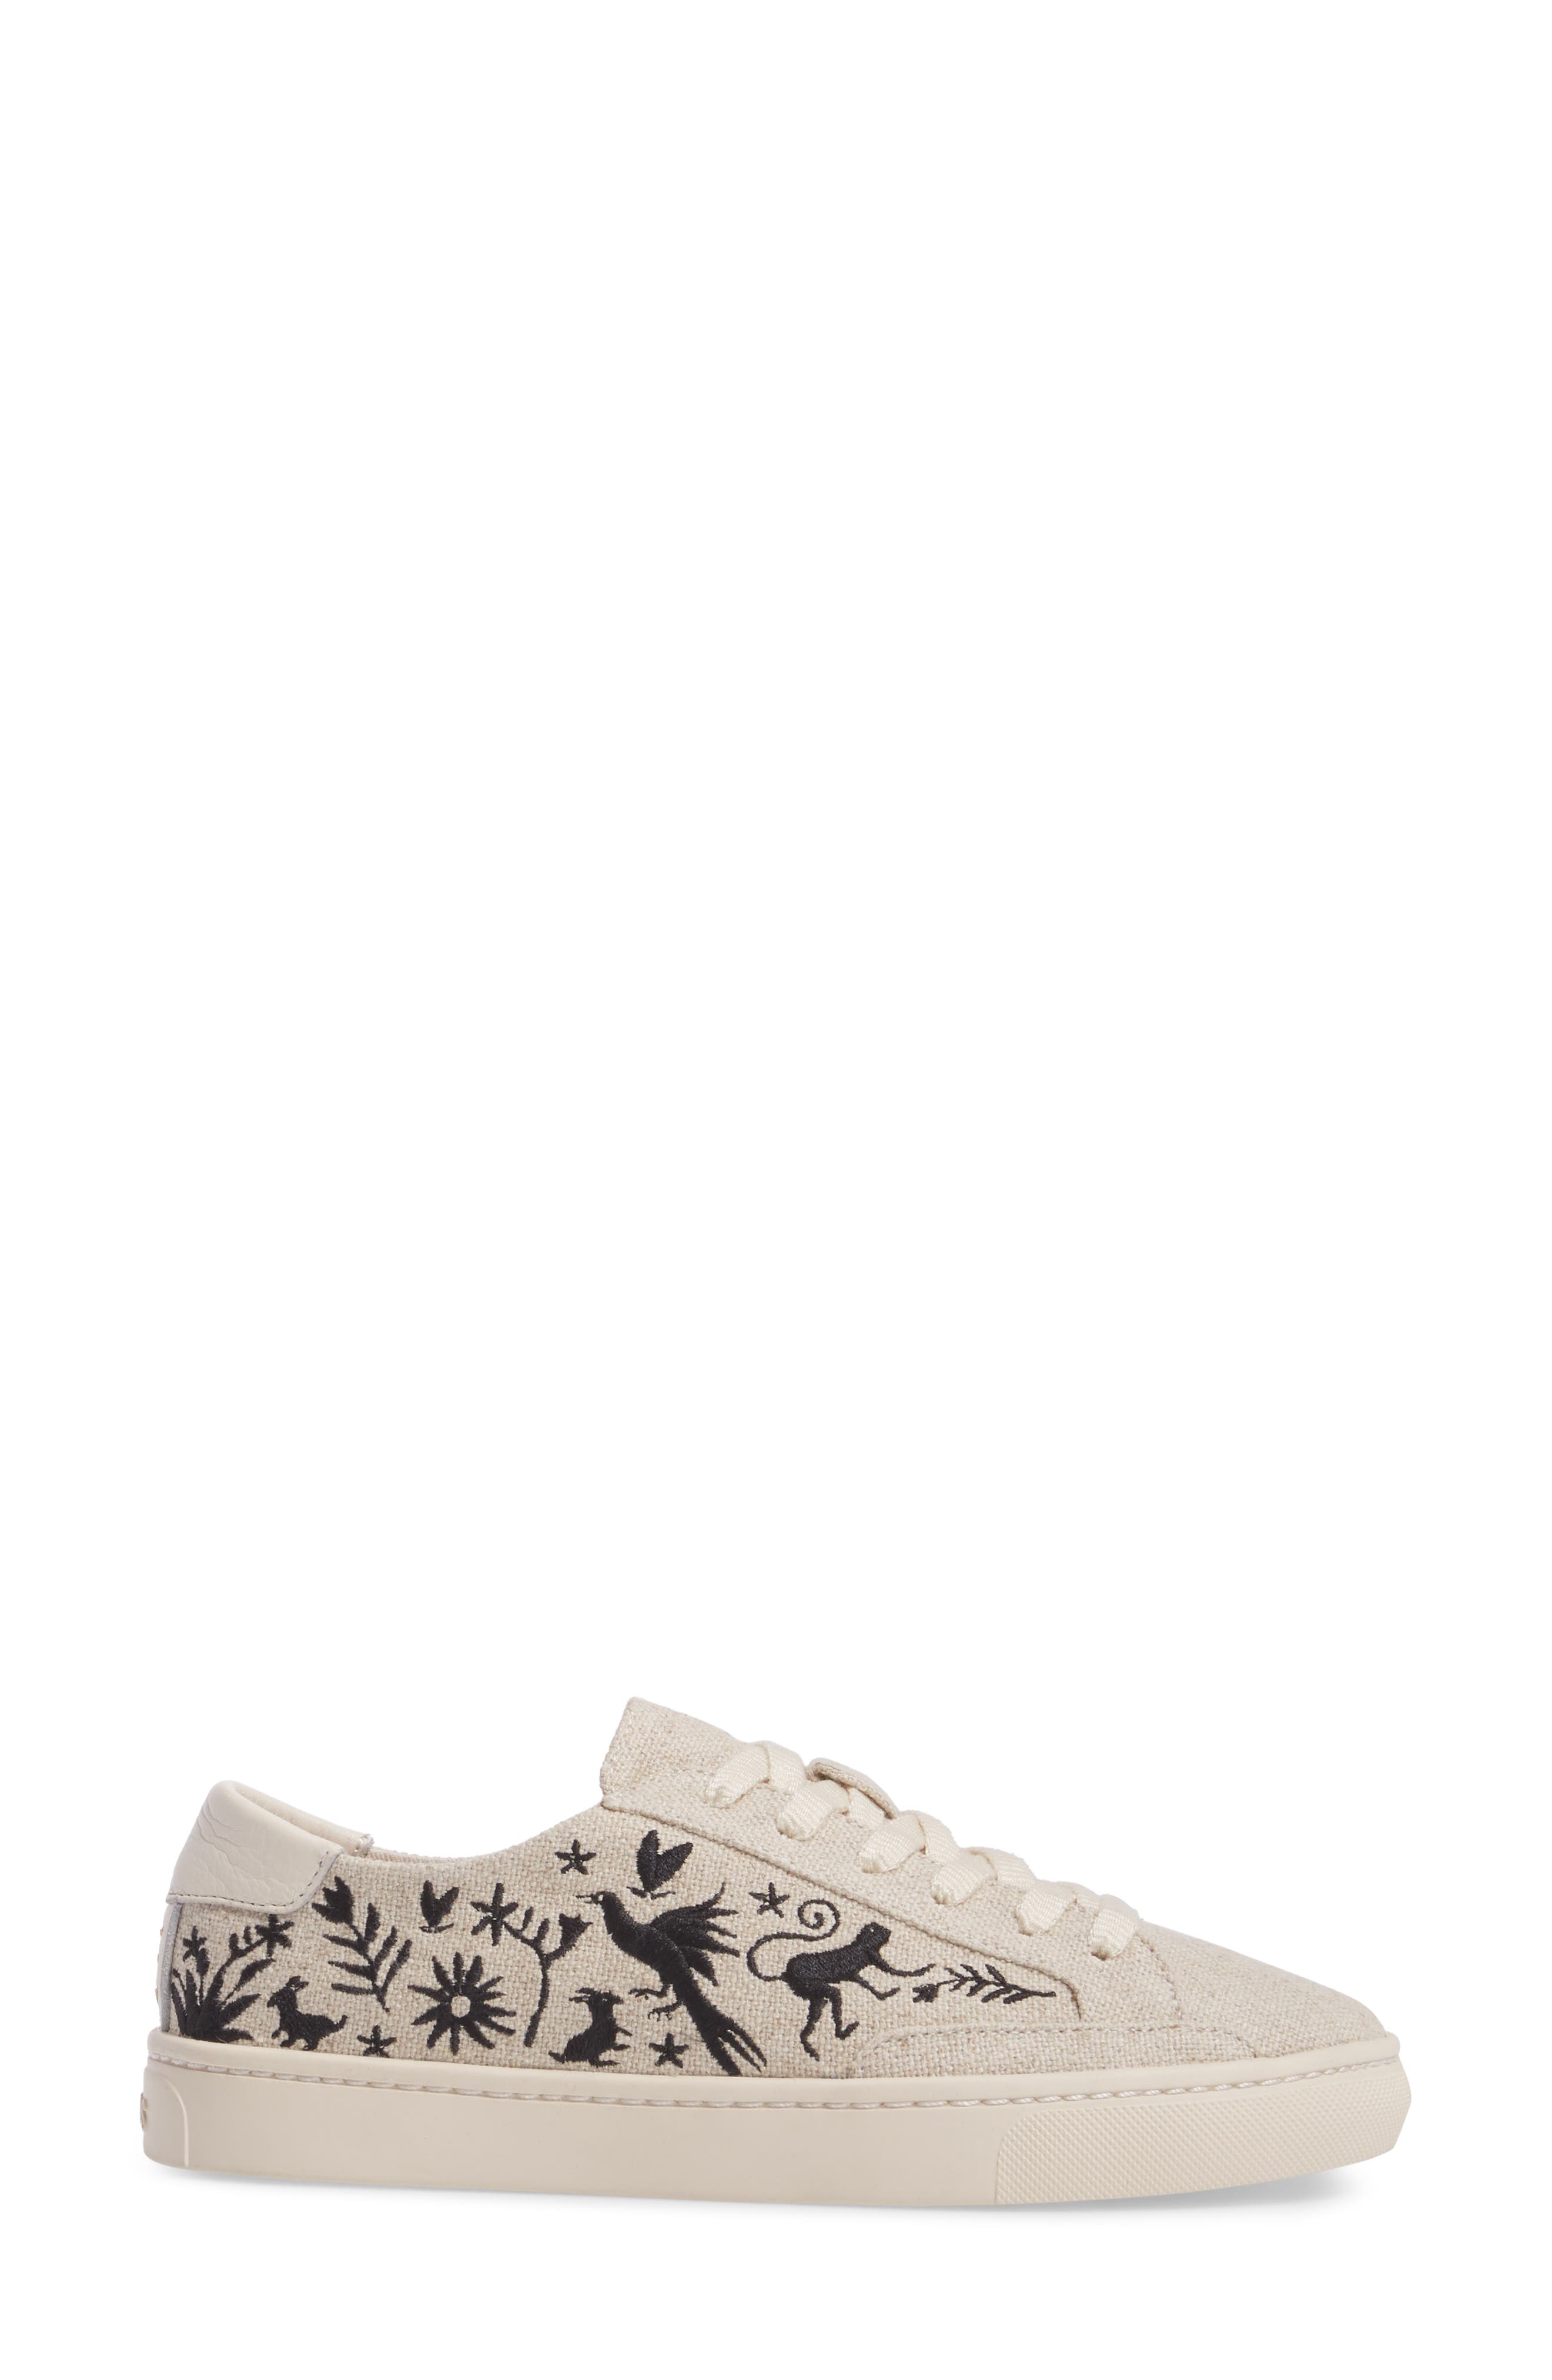 Otomi Sneaker,                             Alternate thumbnail 3, color,                             Sand Black